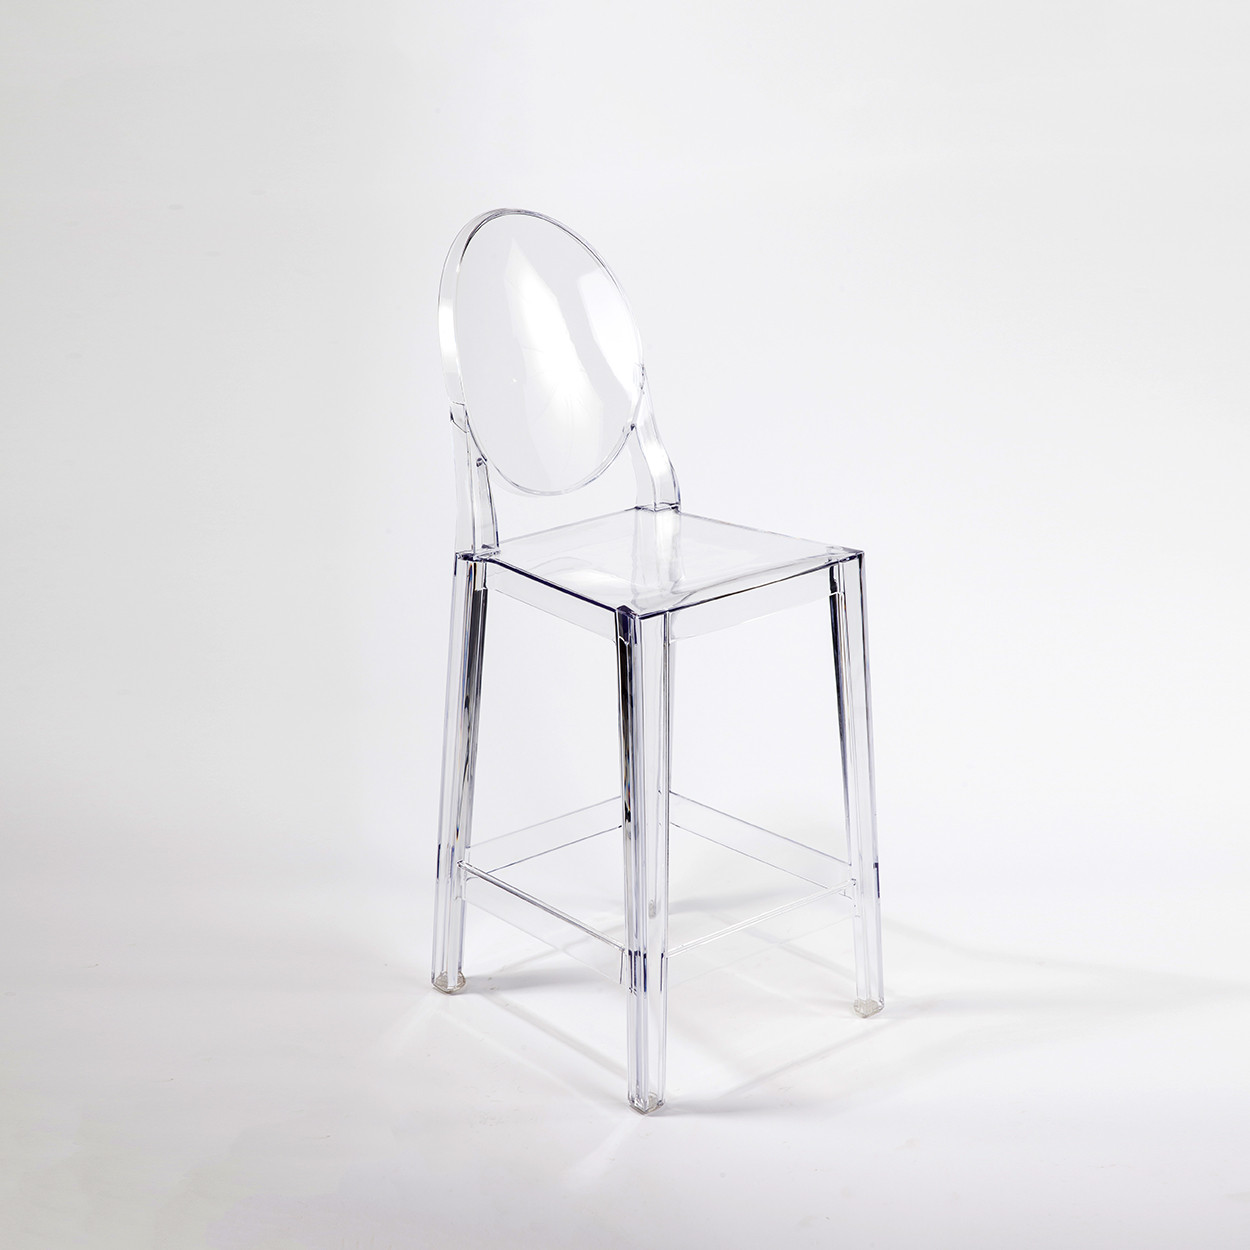 metal high categorized image are stool stools end most with chairs ideas perspex bedroom wooden of bar saddle and back bang height modern up acrylic ghost counter